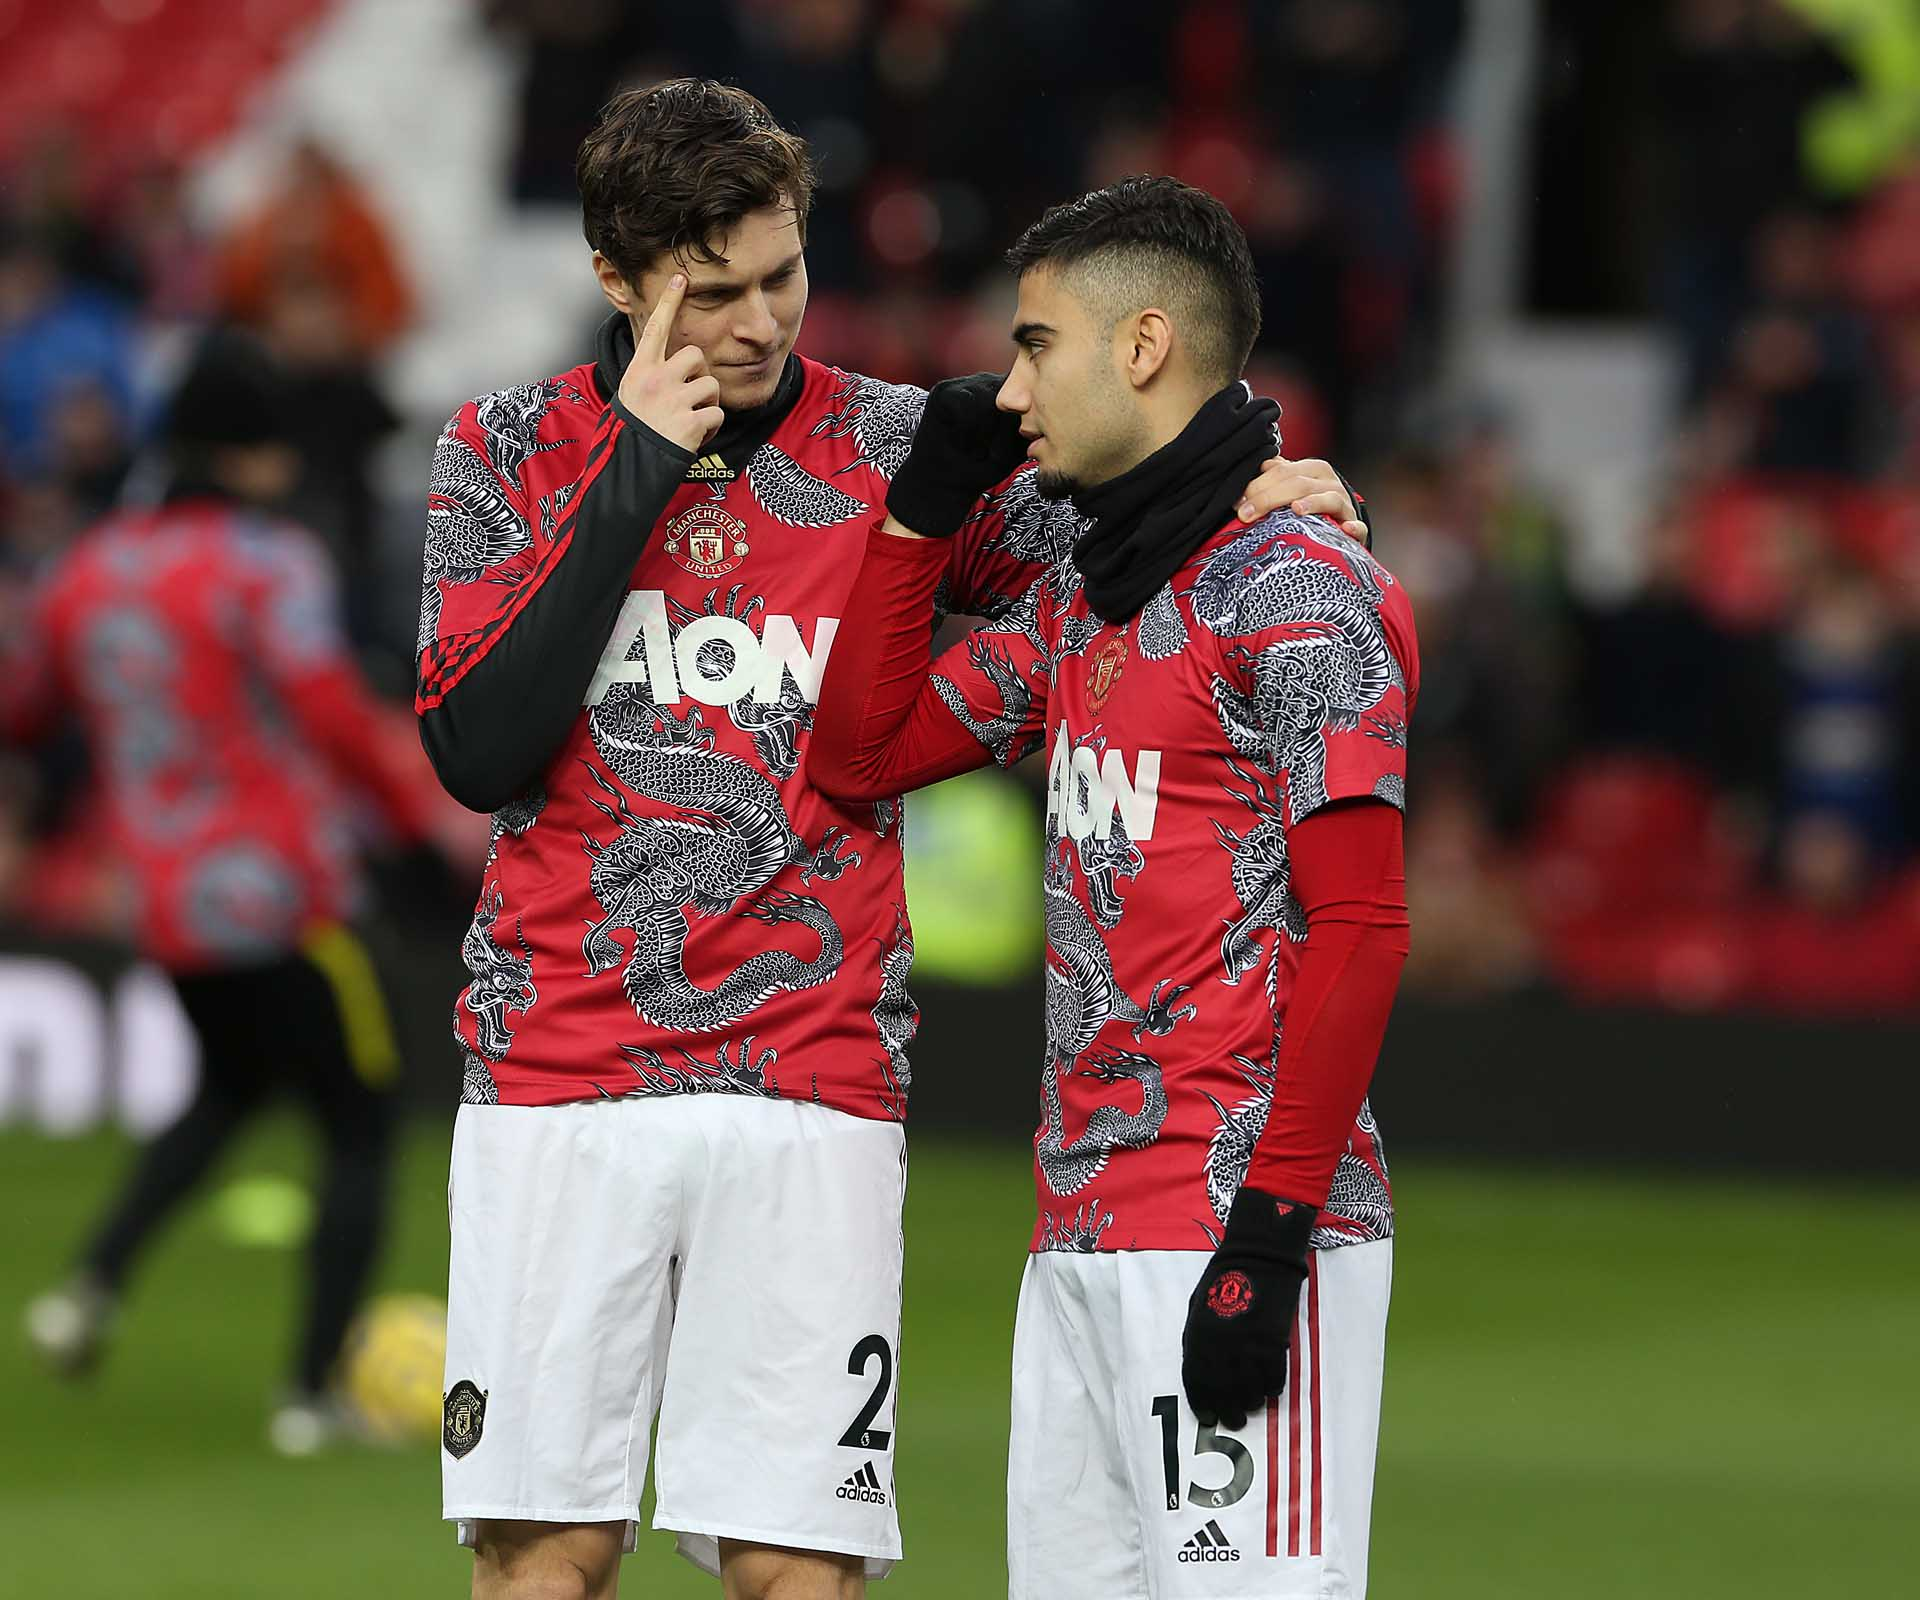 Manchester United Wear Chinese New Year Warm-Up Jerseys - SoccerBible